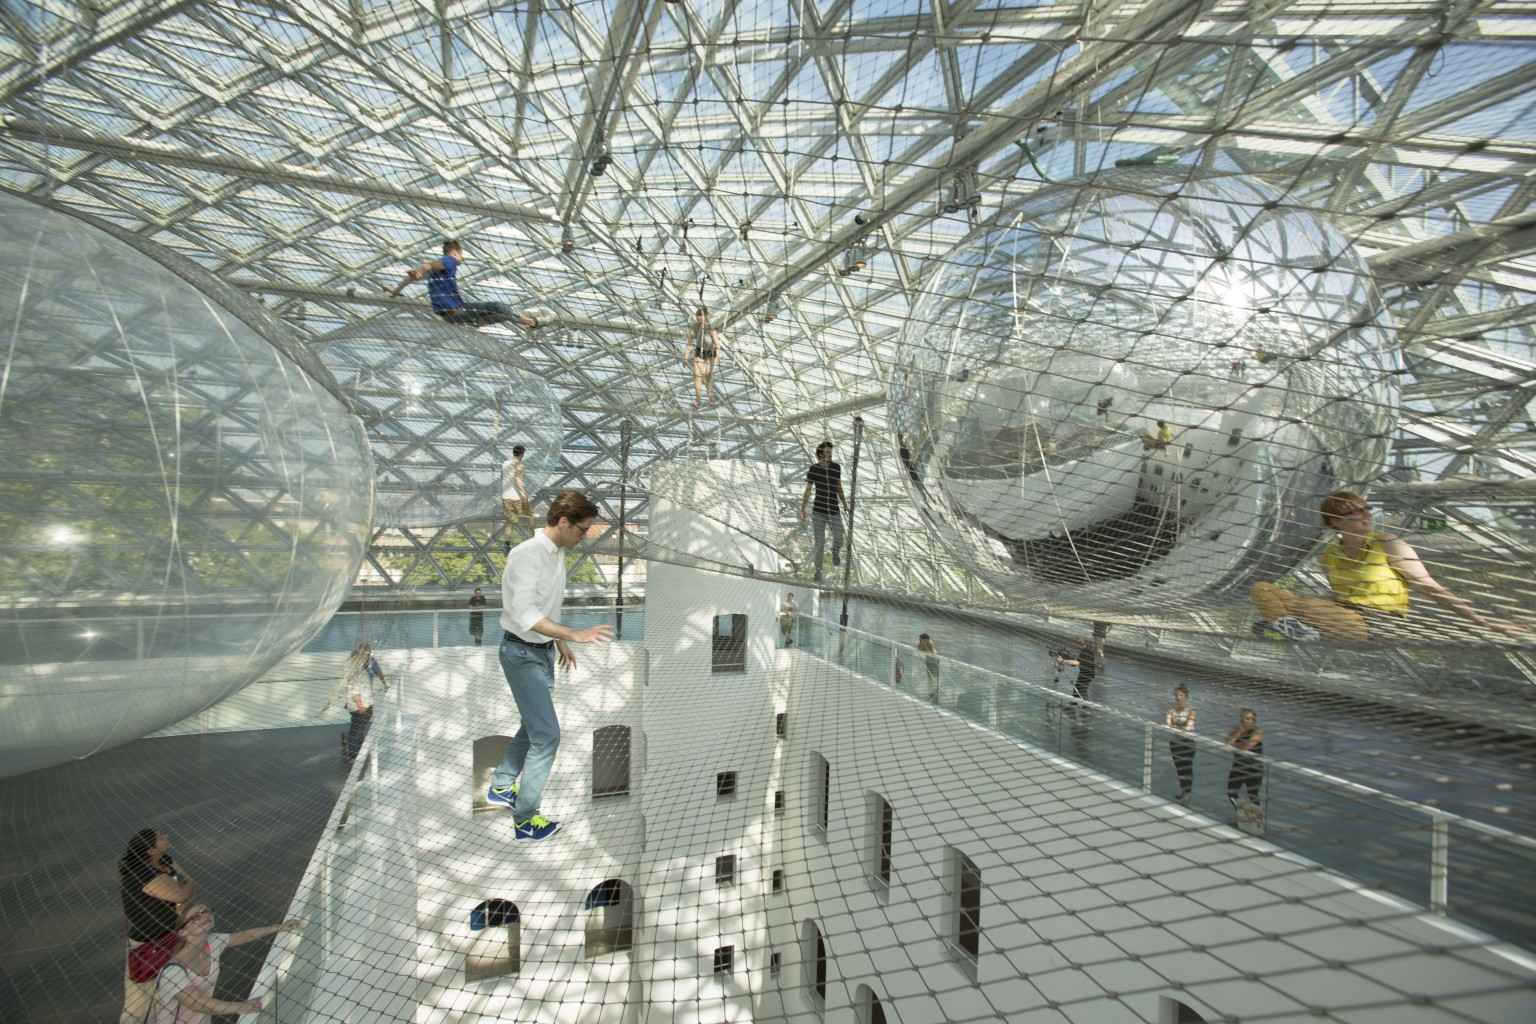 tom s saraceno 39 s 39 in orbit 39 is his largest exhibition to